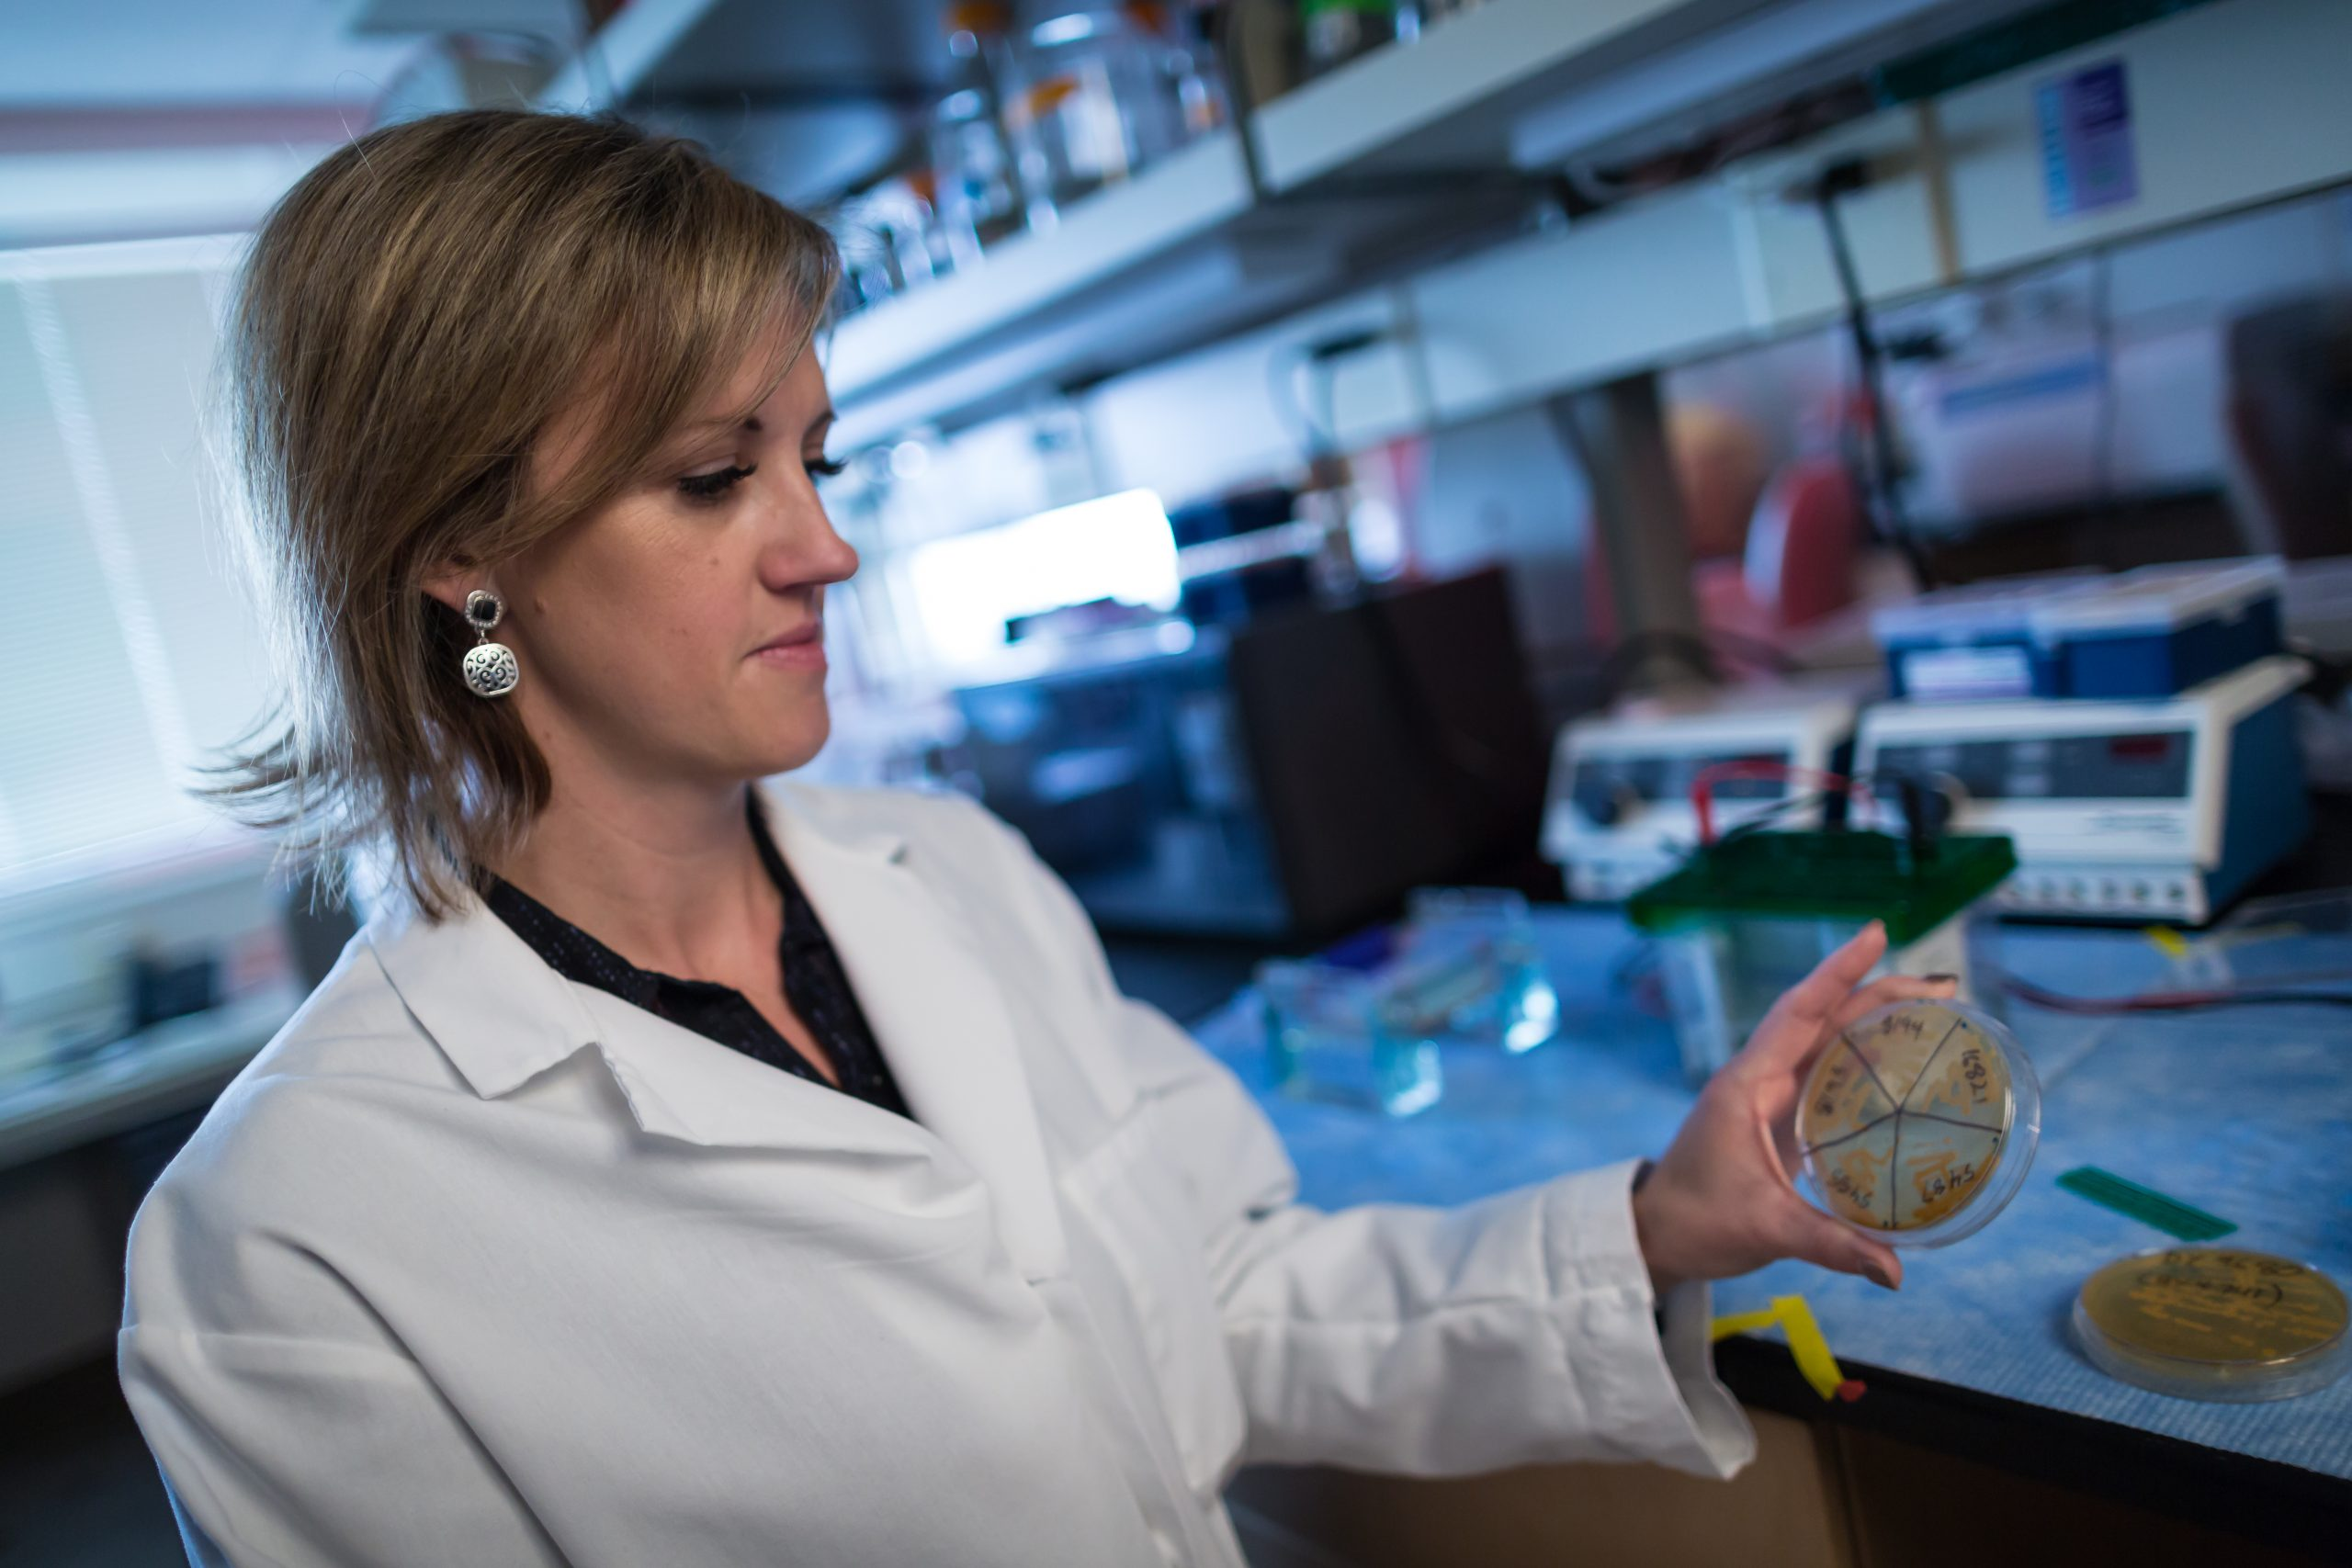 Commensal Microbes That Help Prevent Metabolic Disease